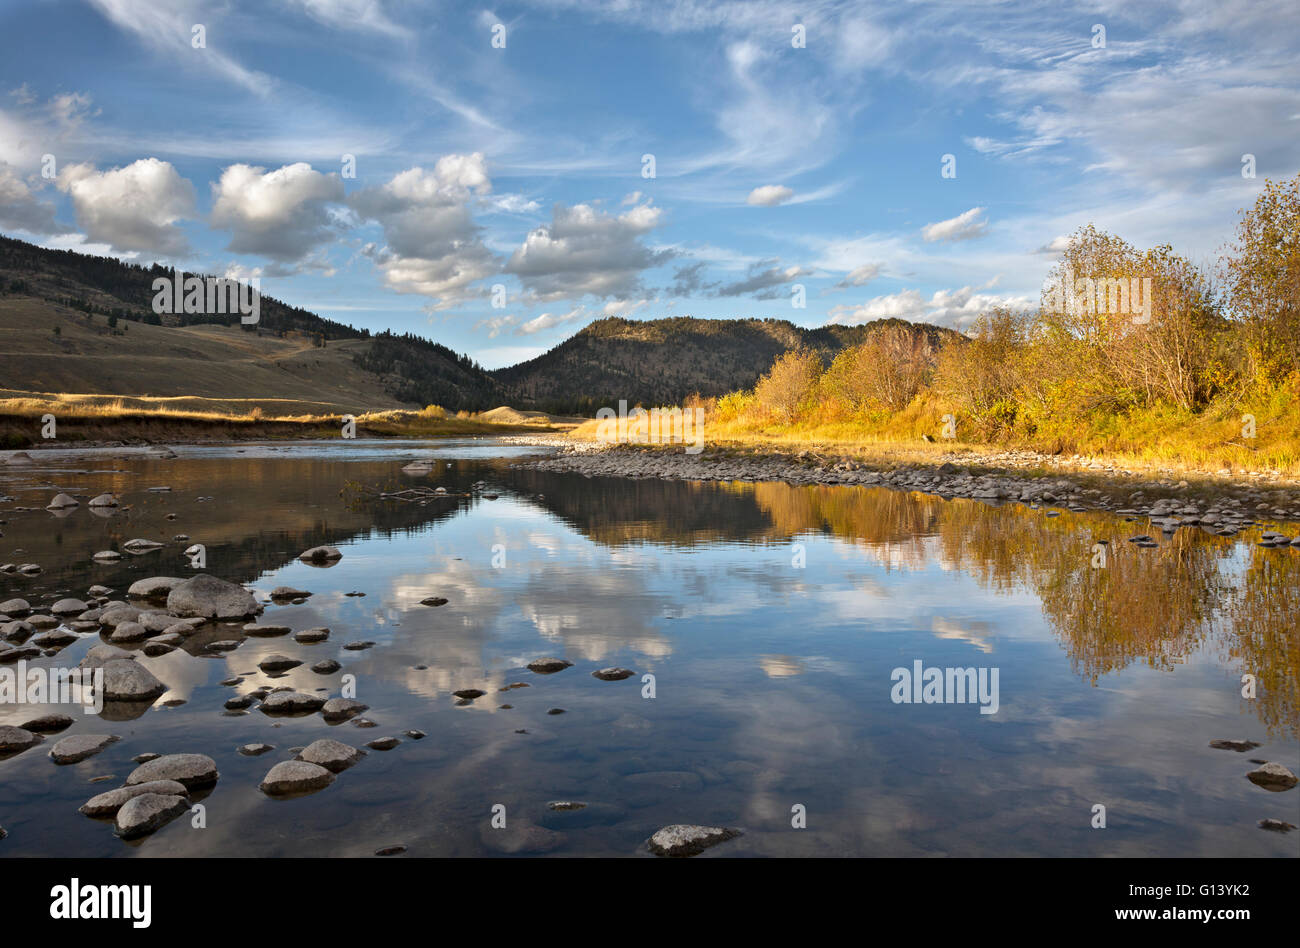 WY01648-00...WYOMING - Clouds reflecting in Slough Creek in Yellowstone National Park. - Stock Image